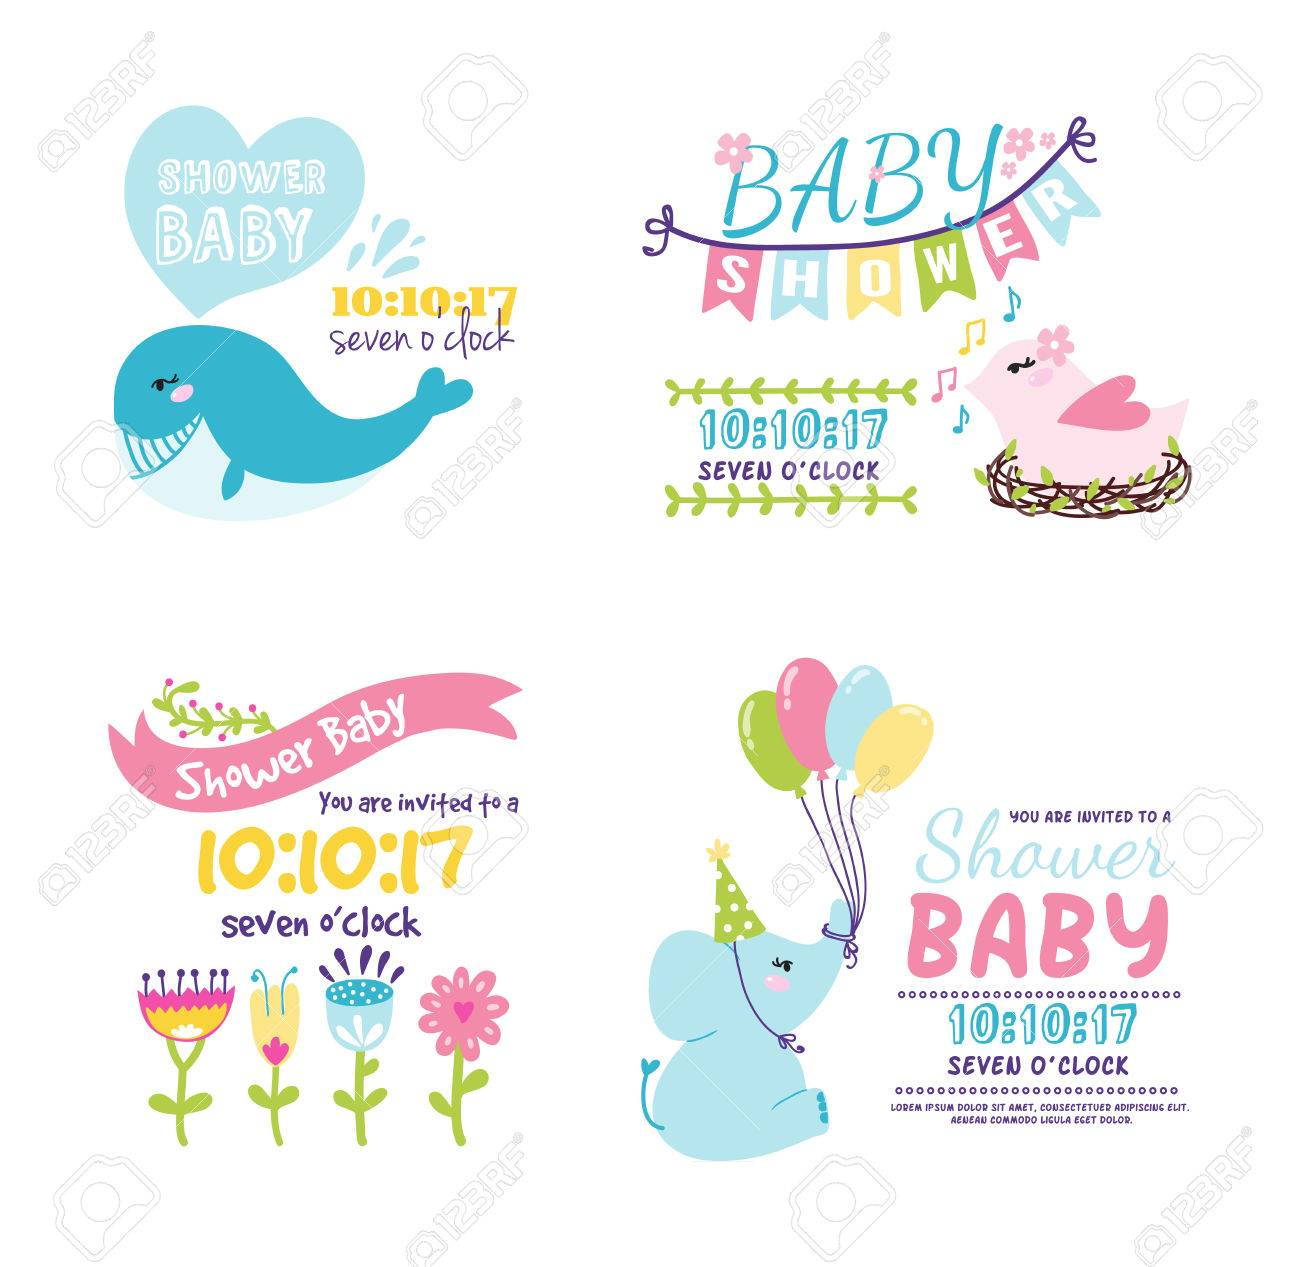 baby shower invitation card vector graphic party template vintage